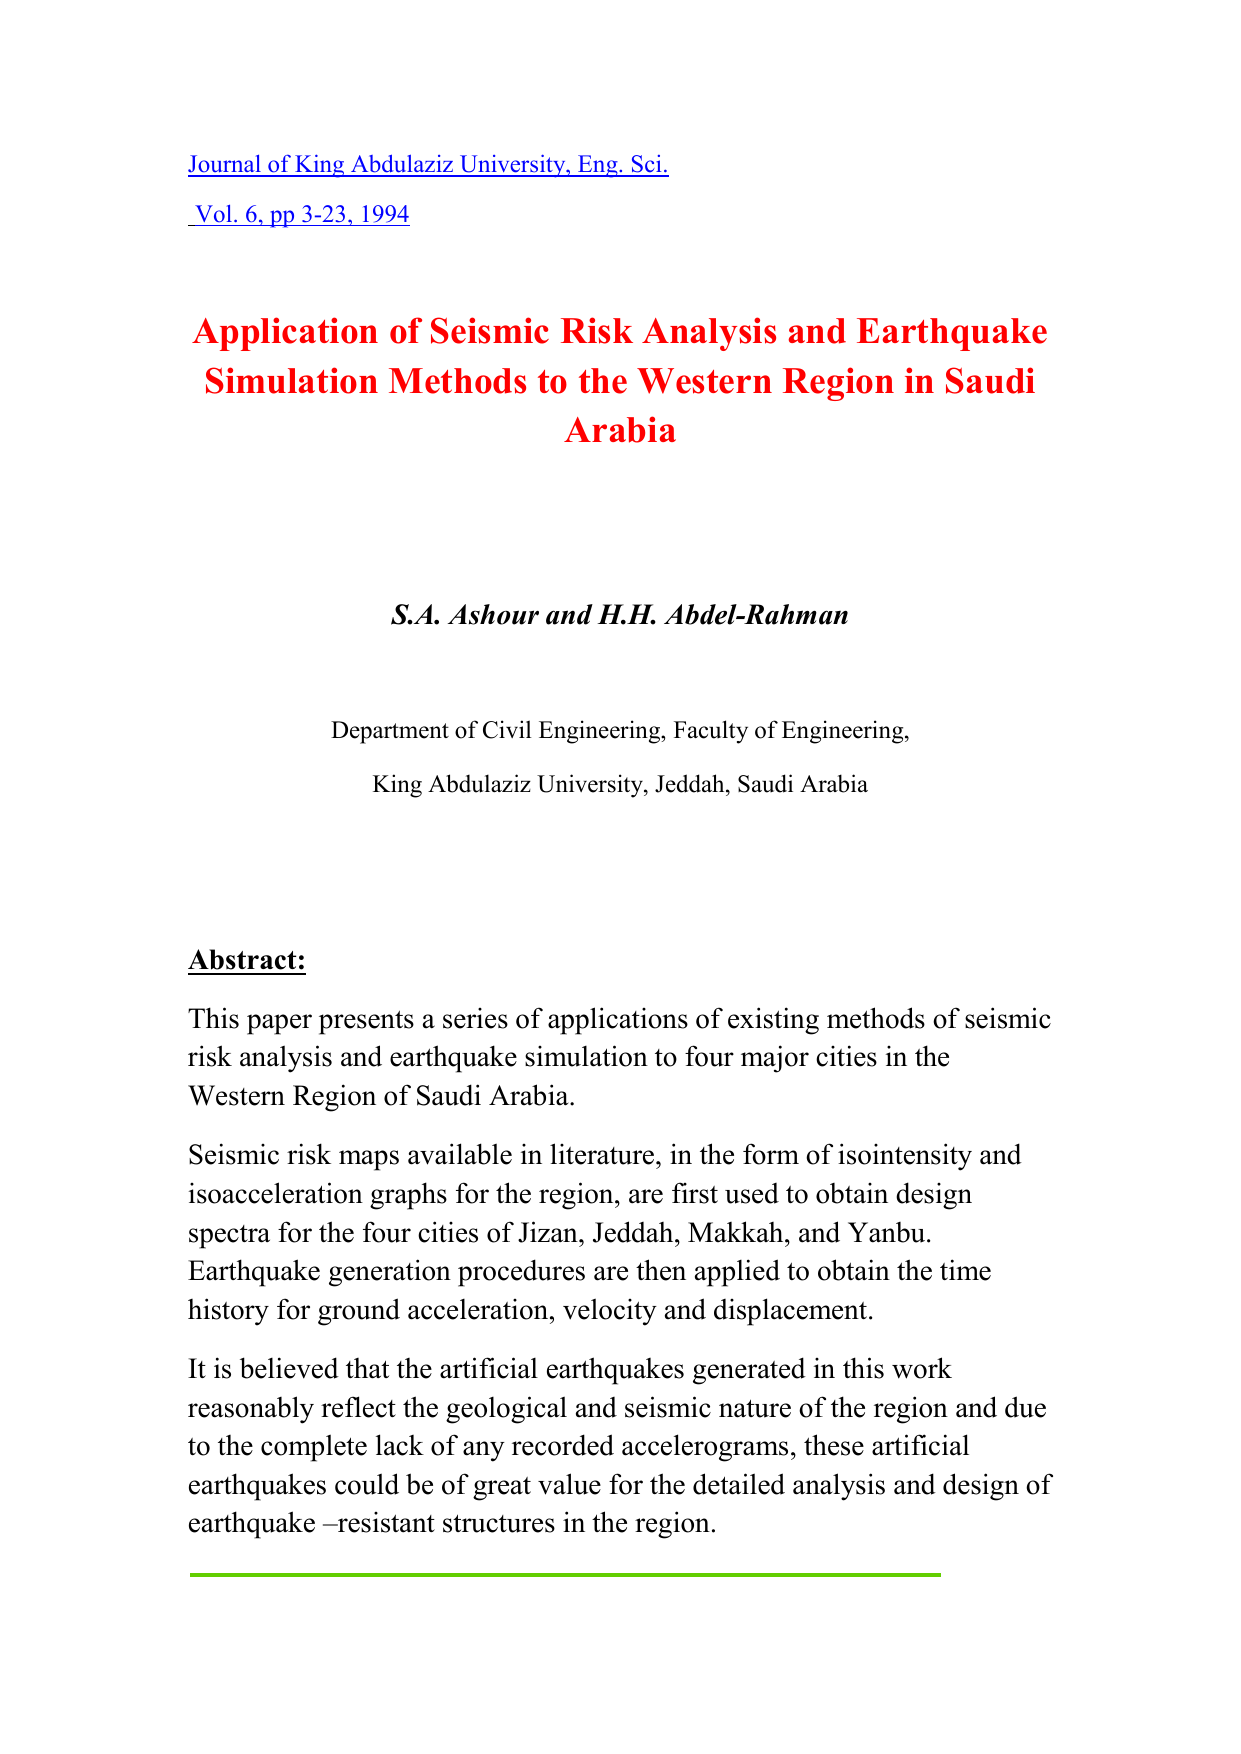 Application of Seismic Risk Analysis and Earthquake Simulation